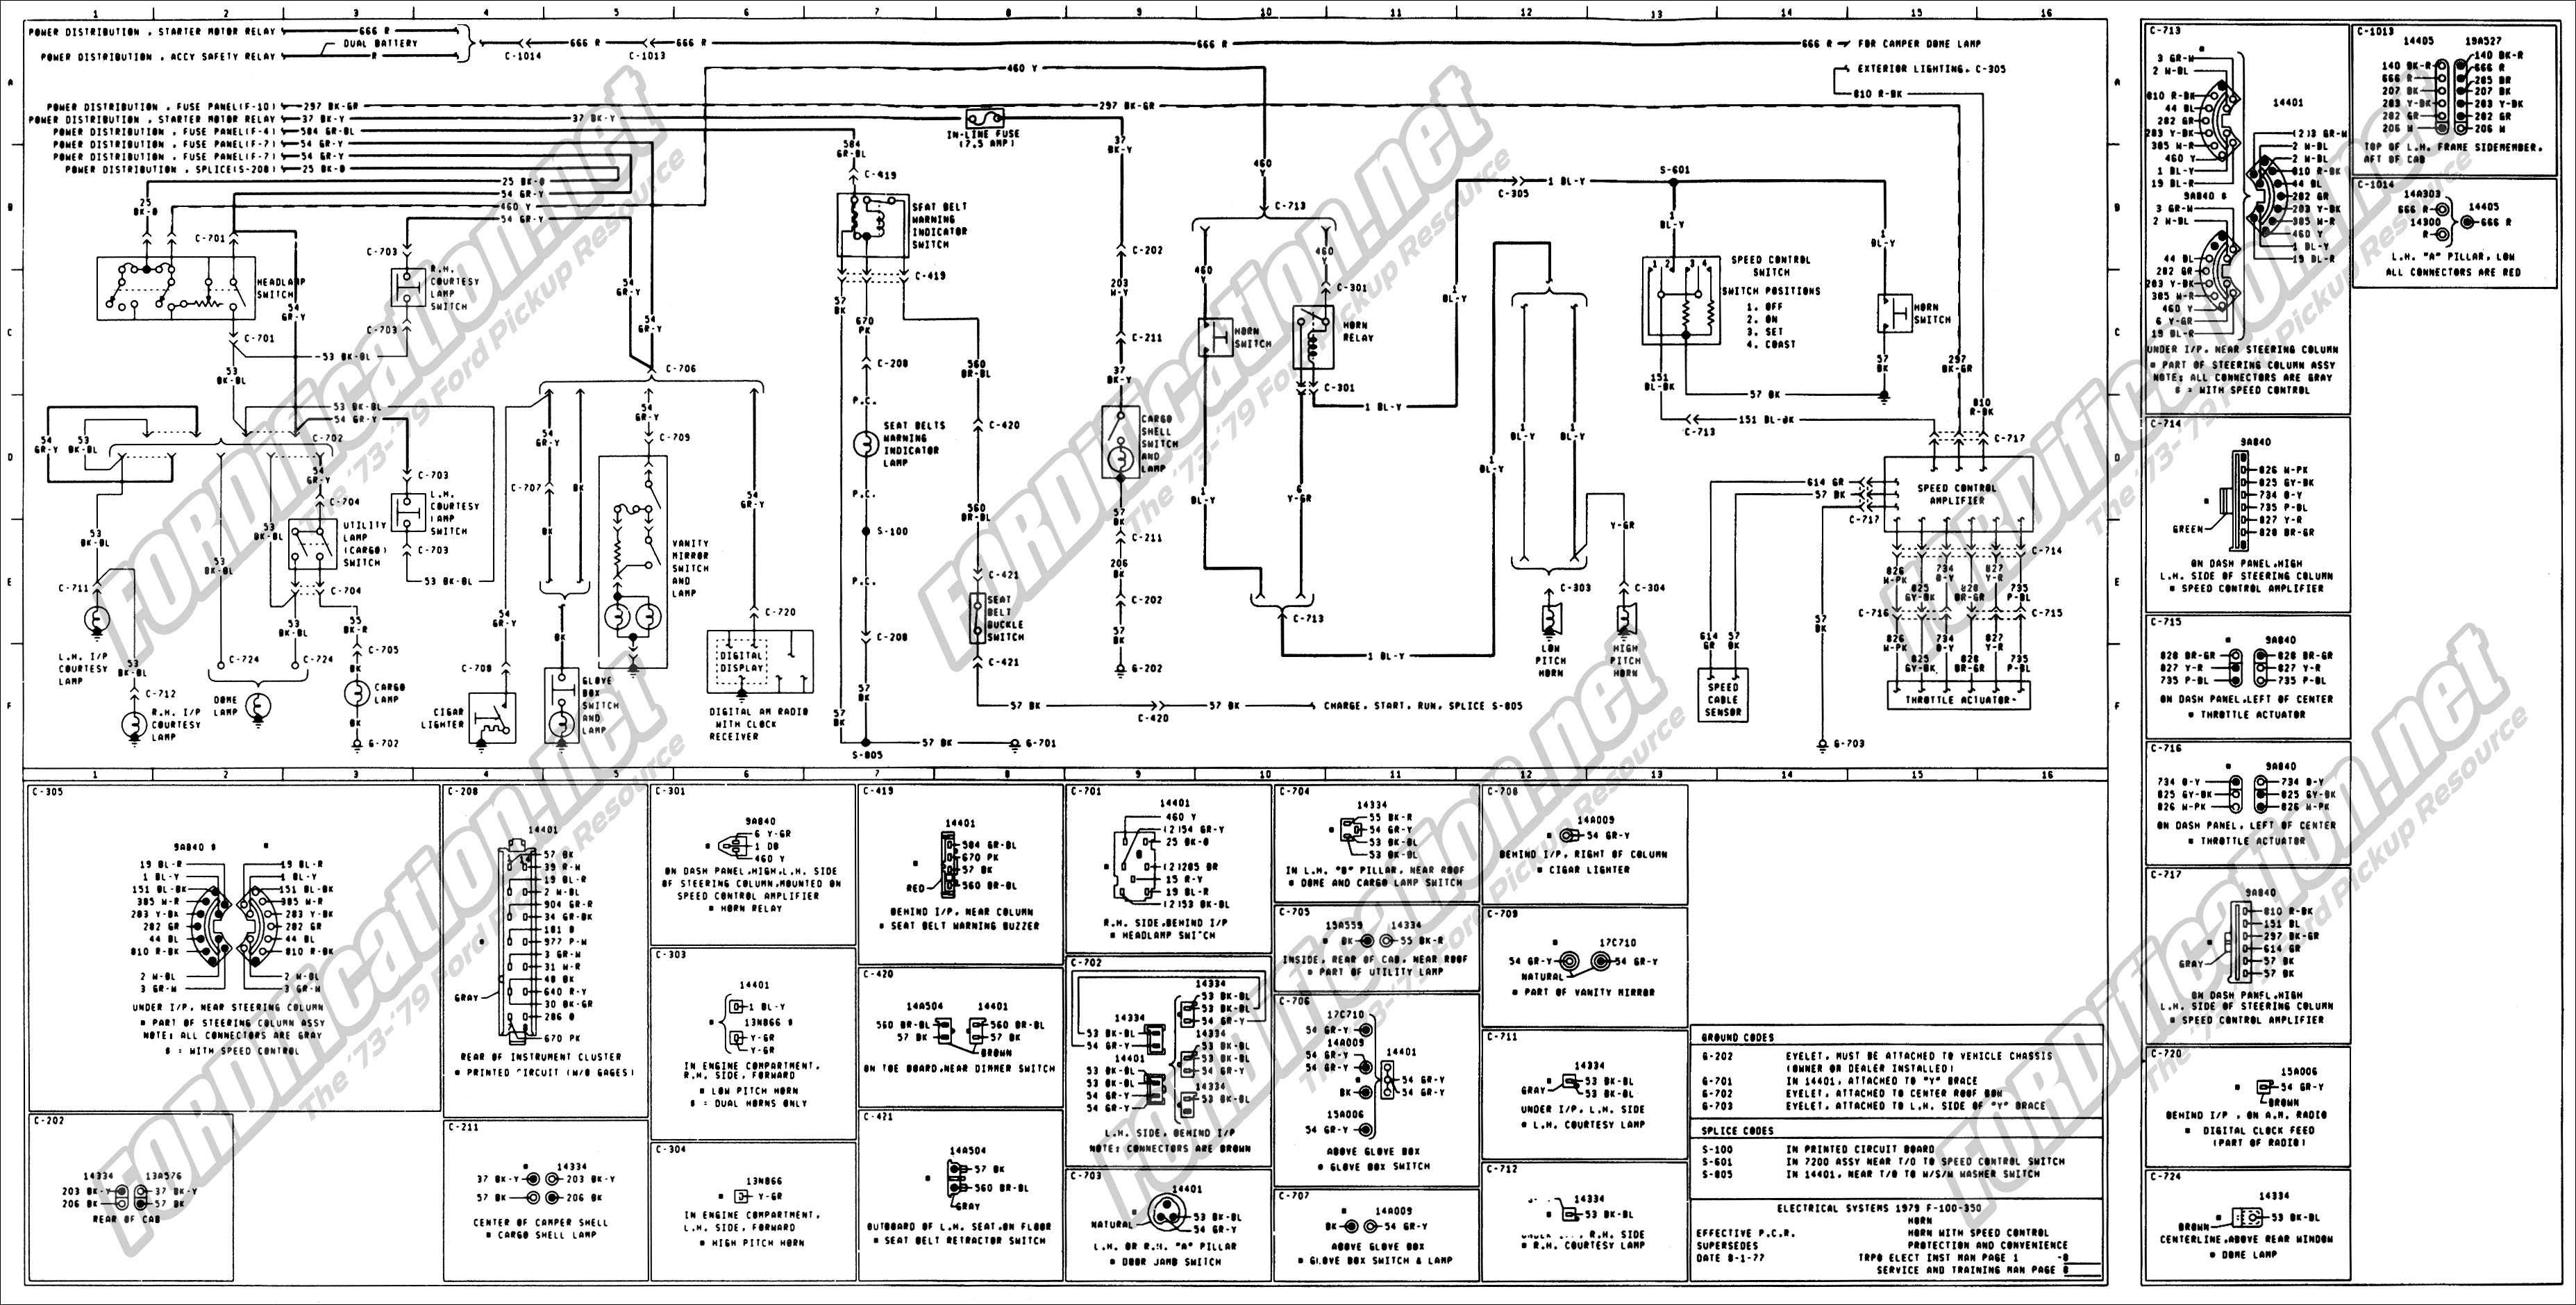 Ford Truck Wiring Diagrams 1973 1979 ford Truck Wiring Diagrams & Schematics fordification Of Ford Truck Wiring Diagrams